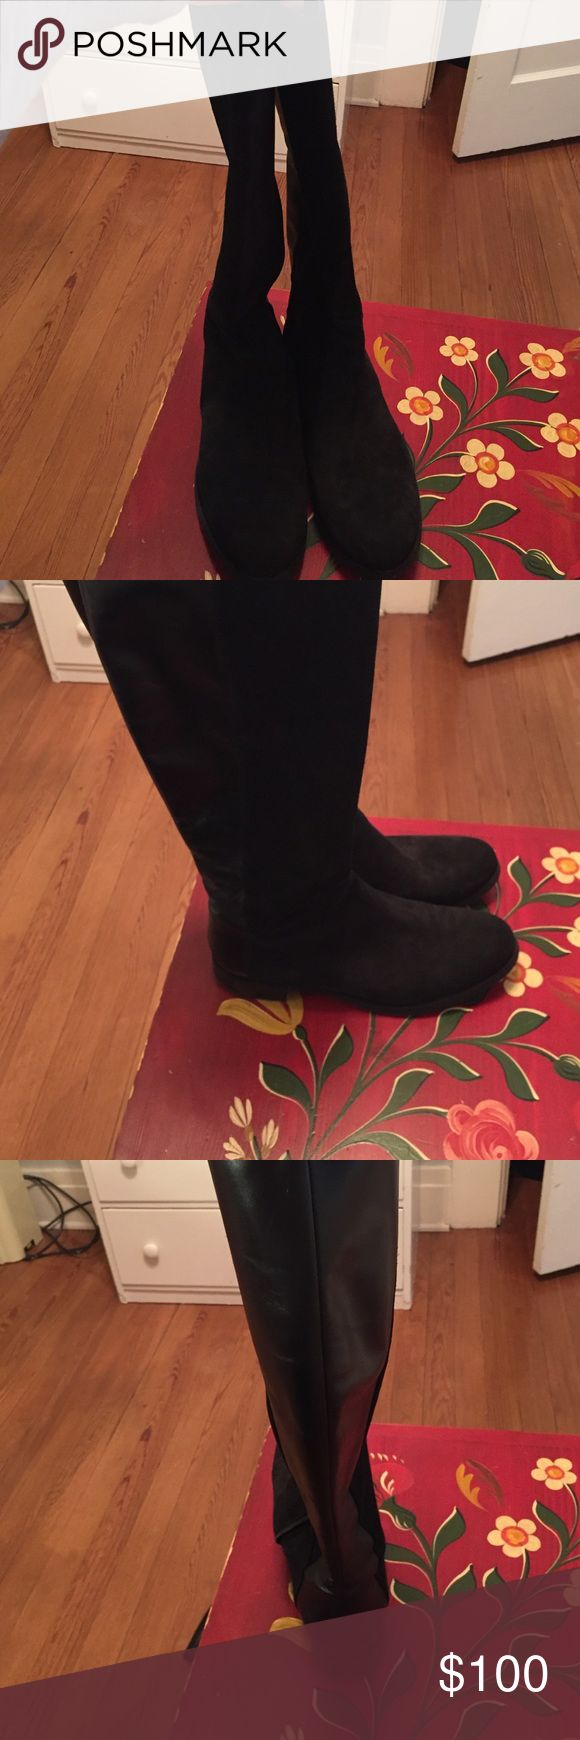 Butter black boots Suede black boots. Less than a year old. Great condition. Butter Shoes Shoes Winter & Rain Boots